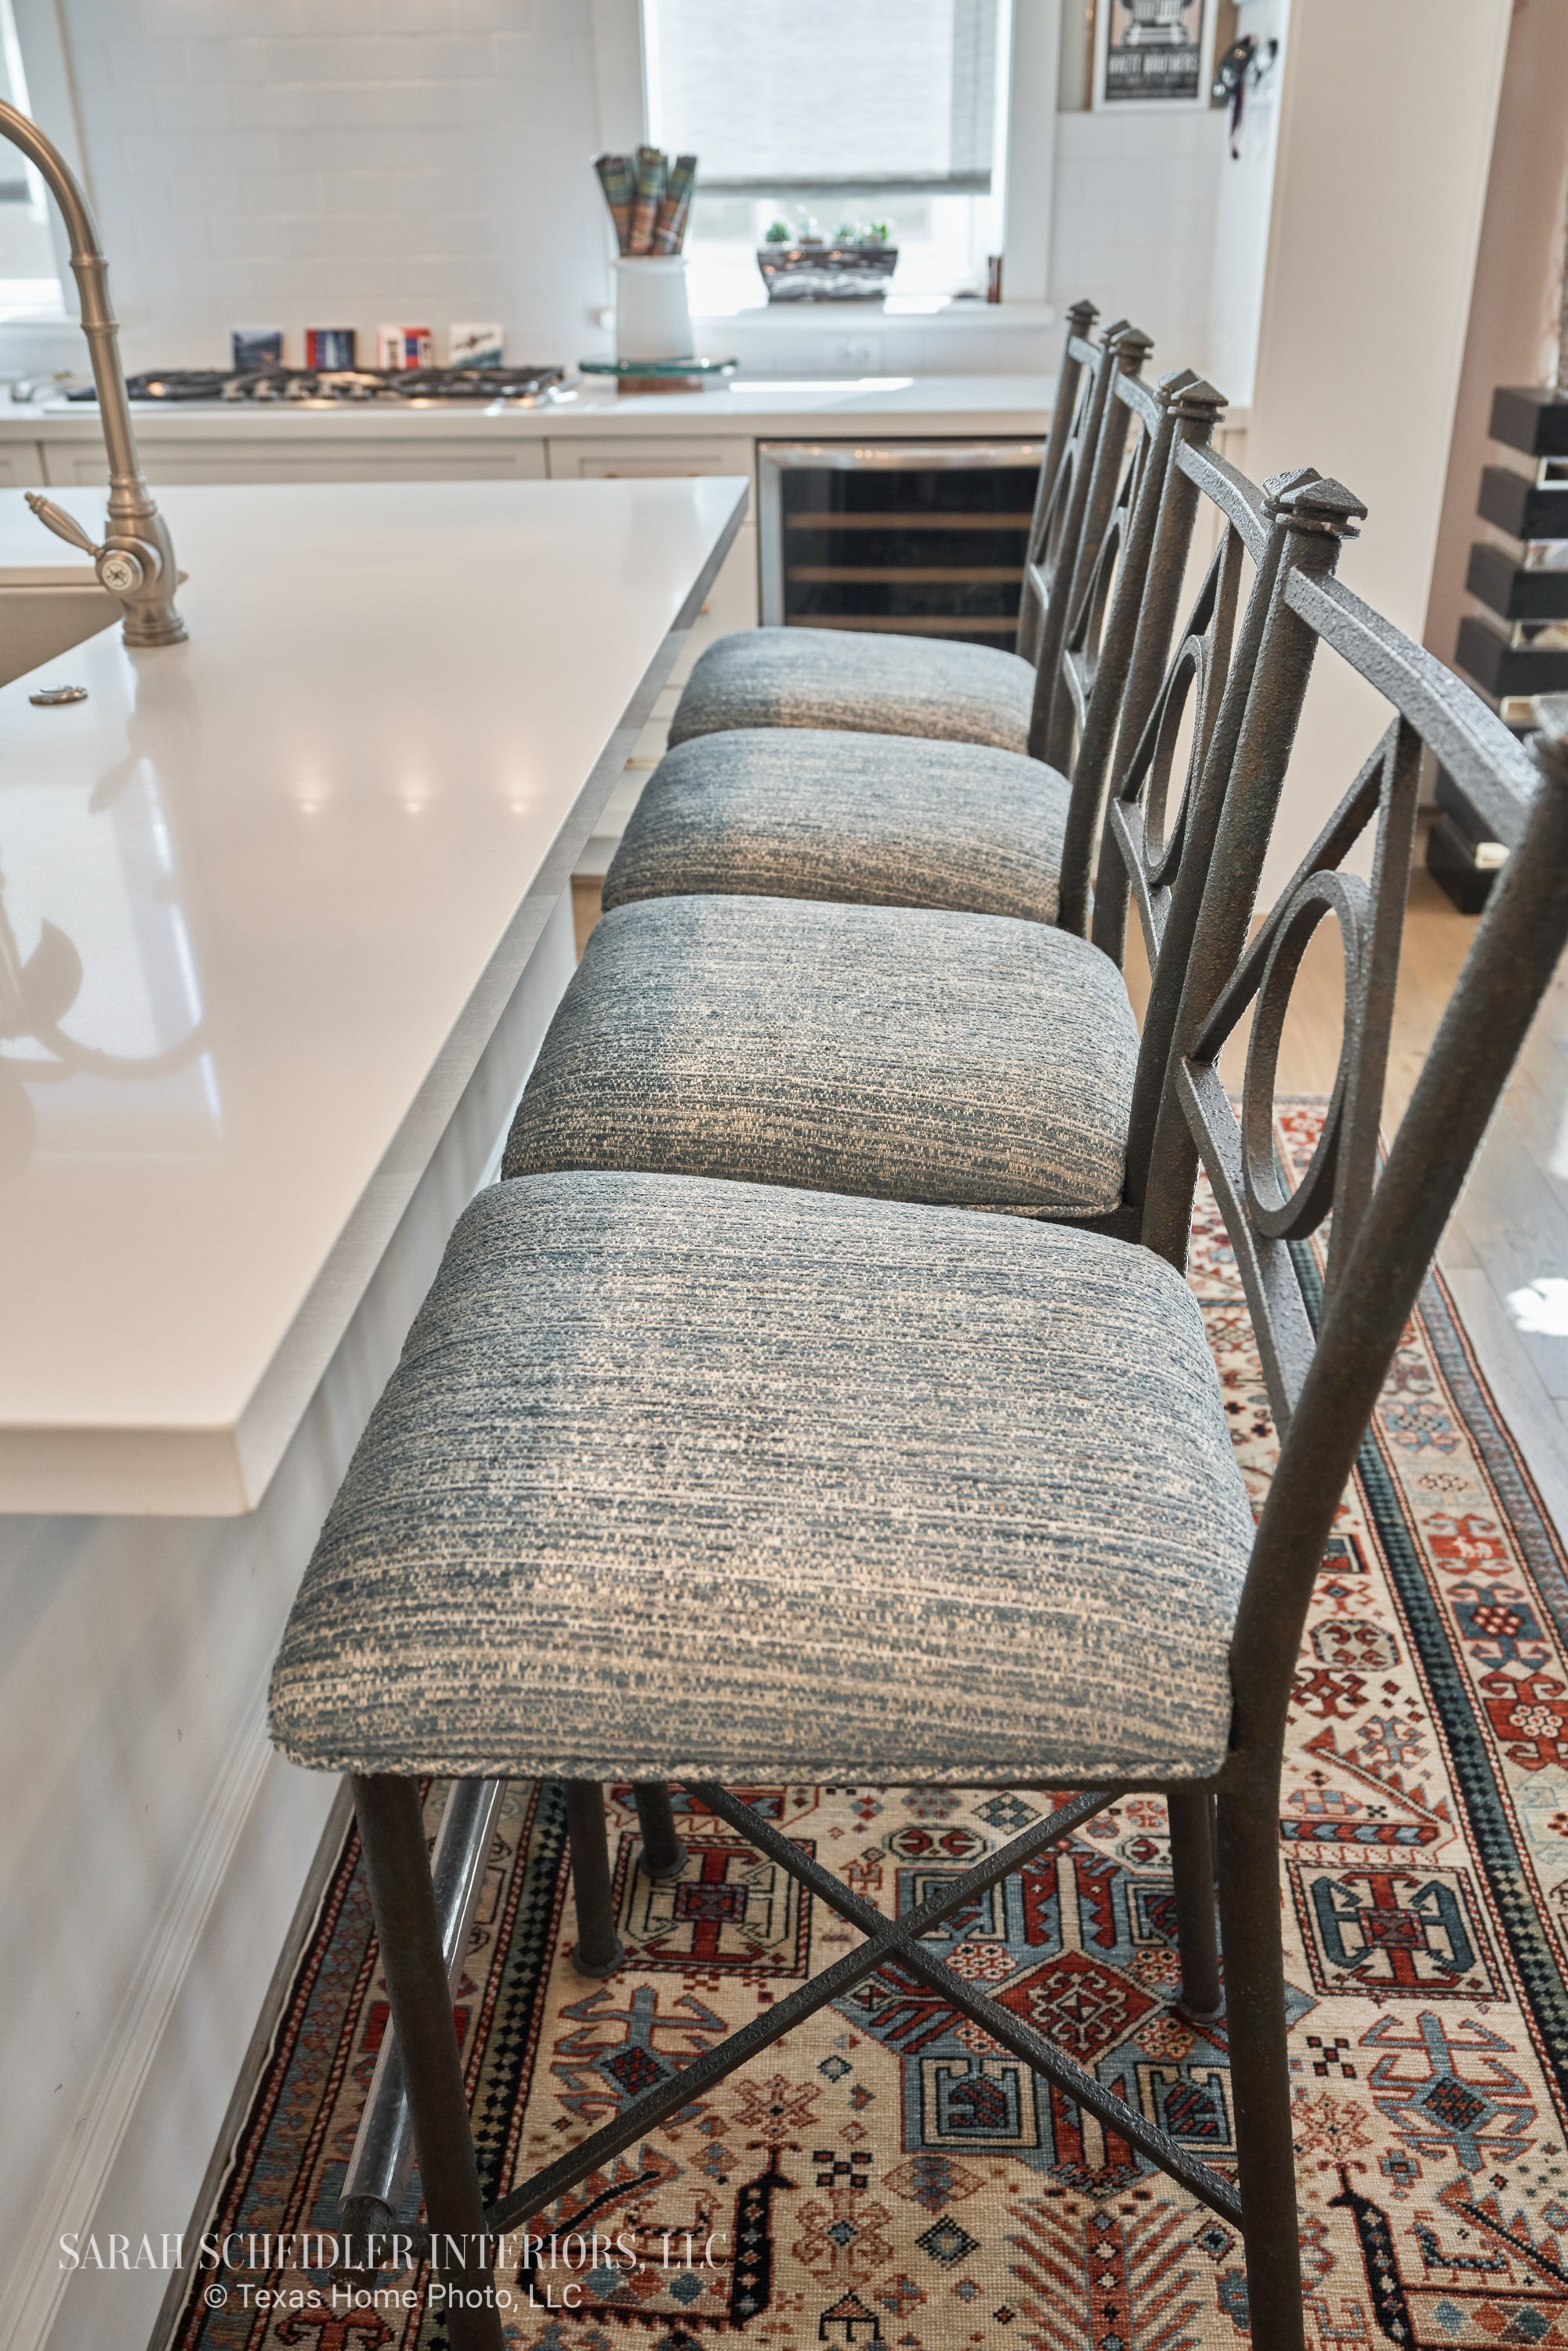 Kitchen Bar Stools Reupholstered in Prato Crypton Home Teal